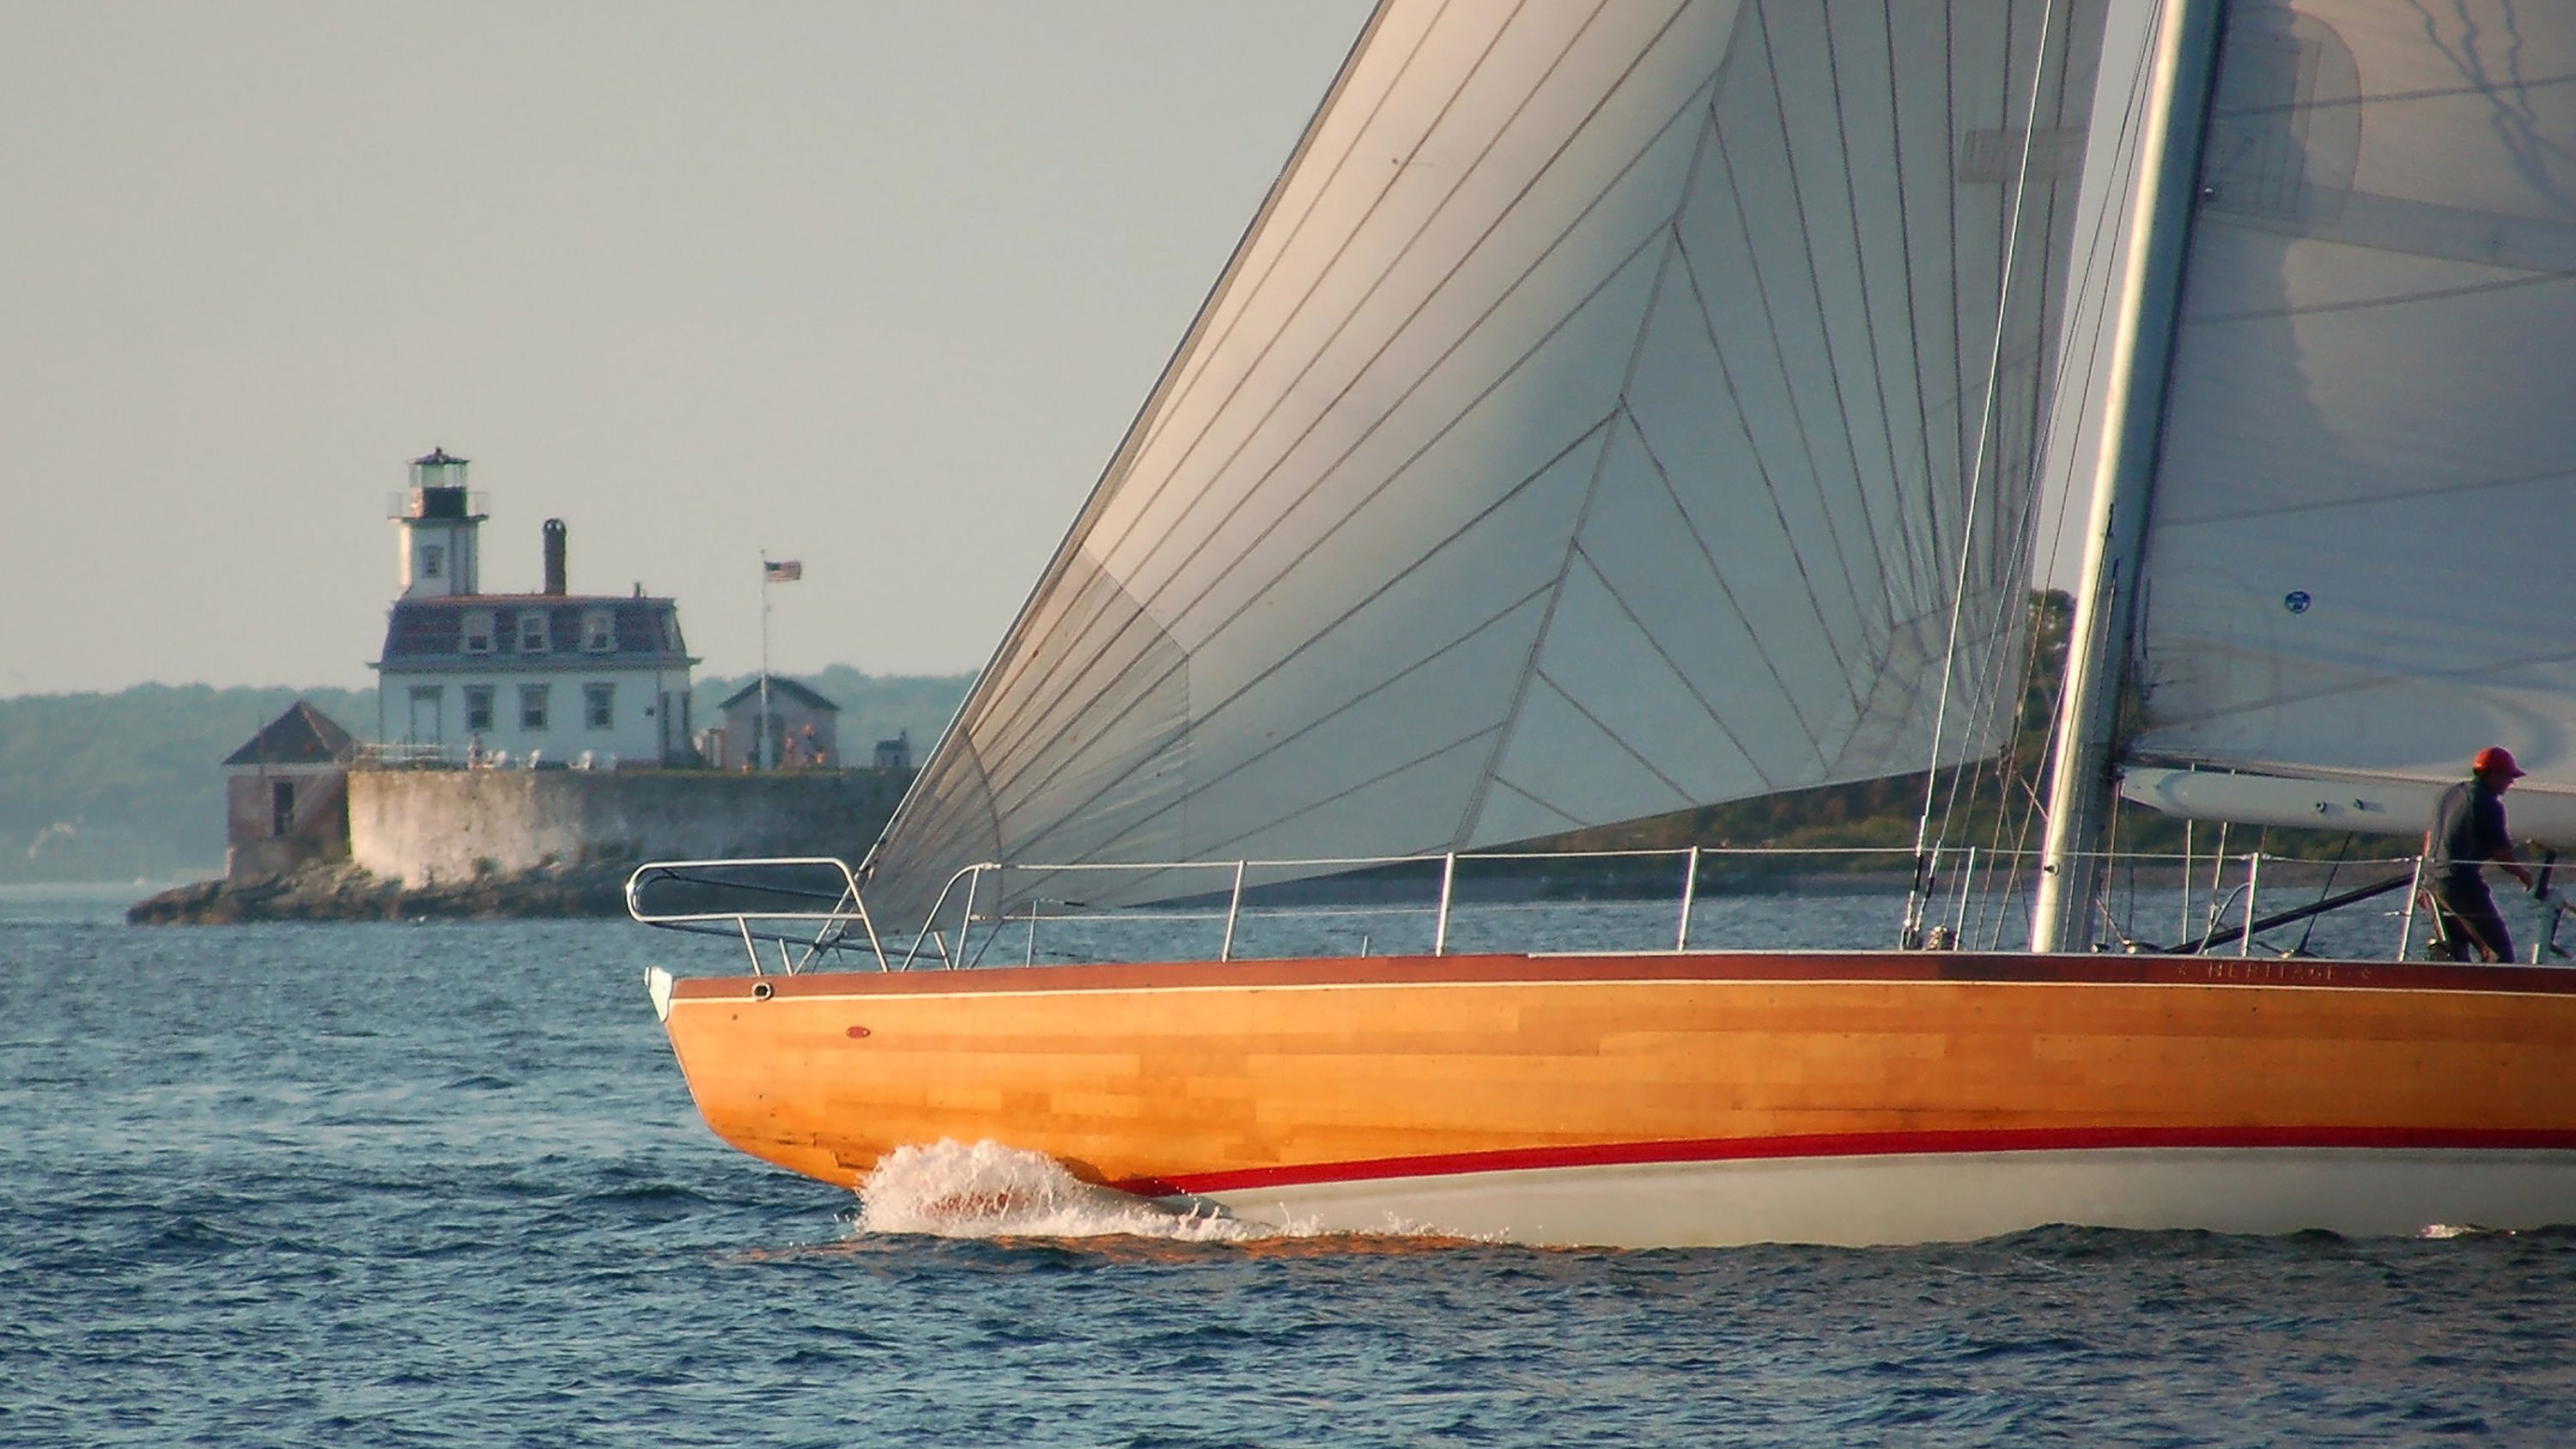 Sailing Excursion - America's Cup 12 Metre Racing Yacht